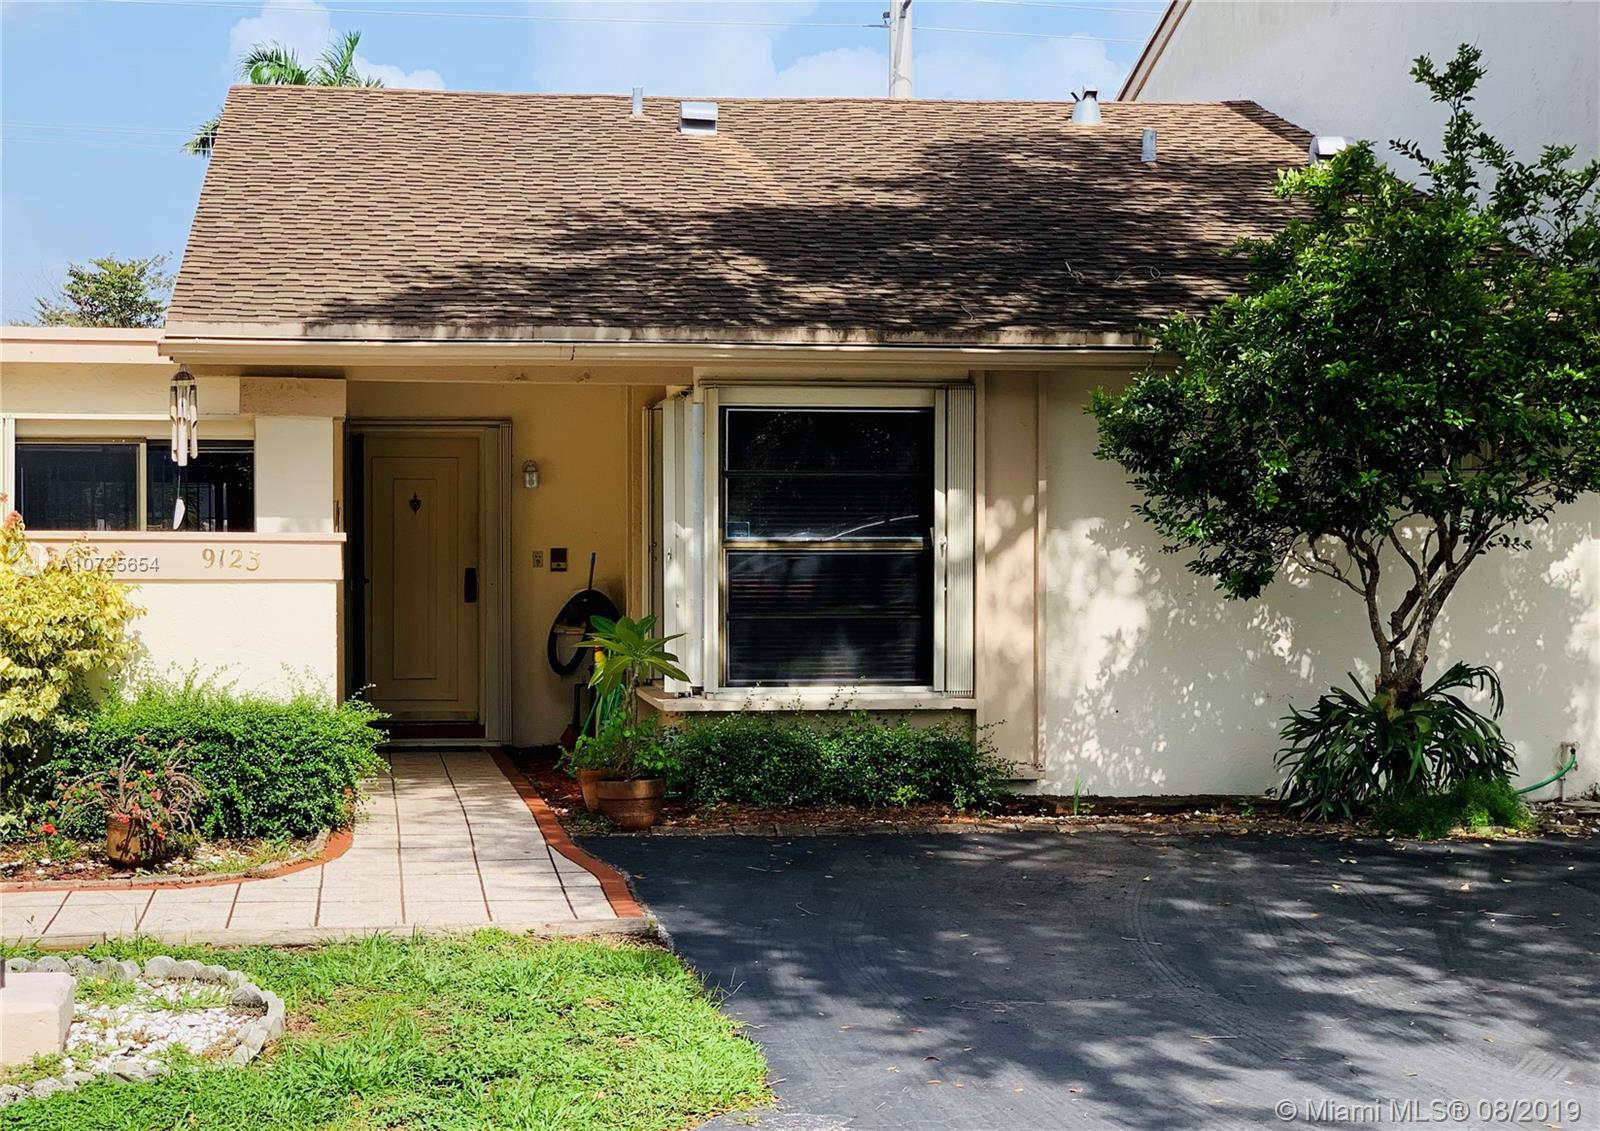 9123 SW 117th Ct, Kendall, Florida